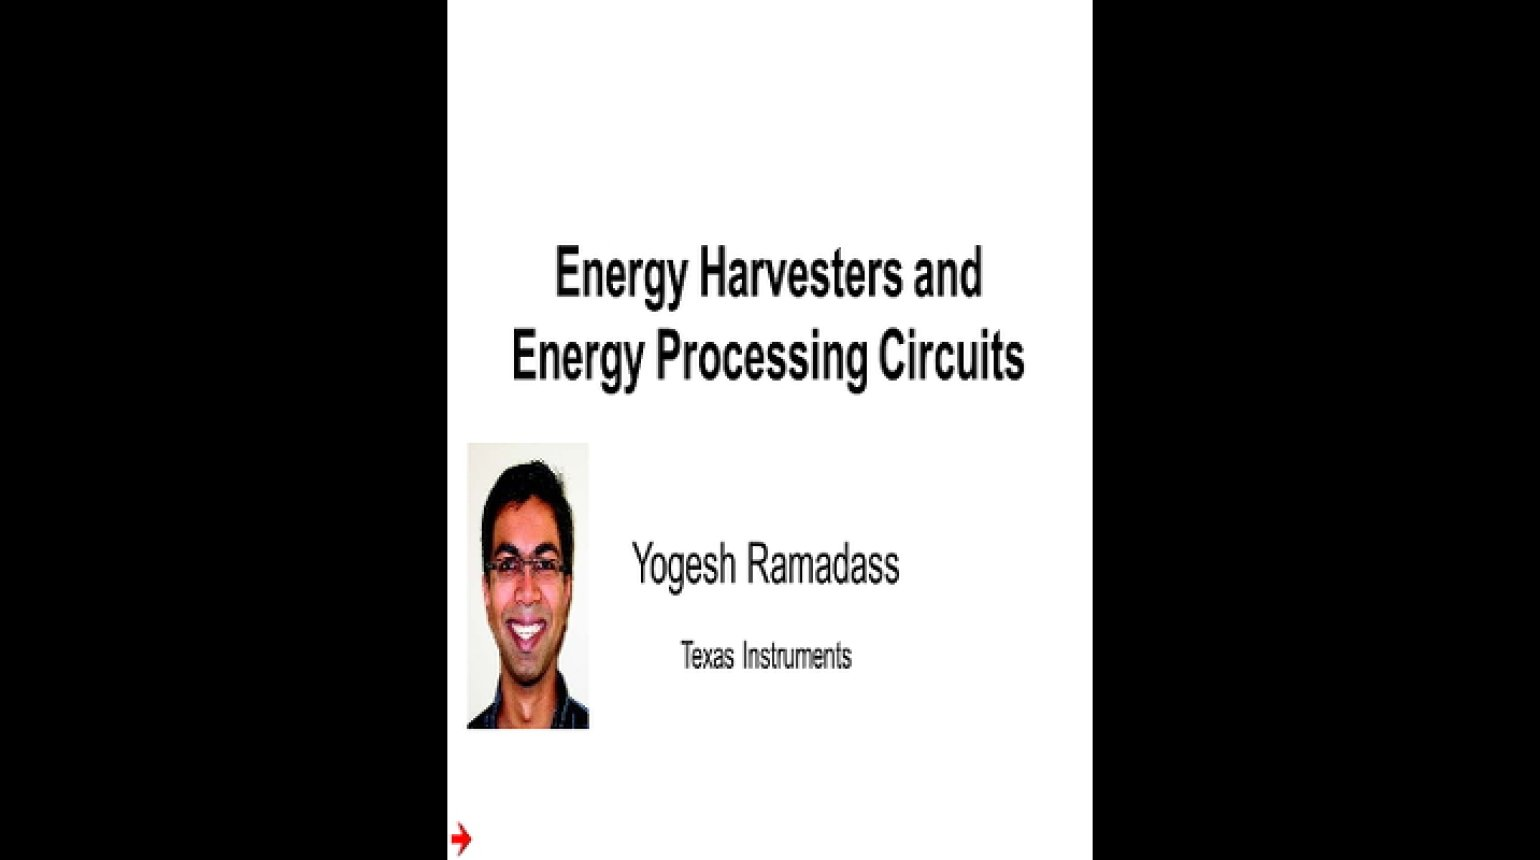 Energy Harvesters and Energy Processing Circuits Video